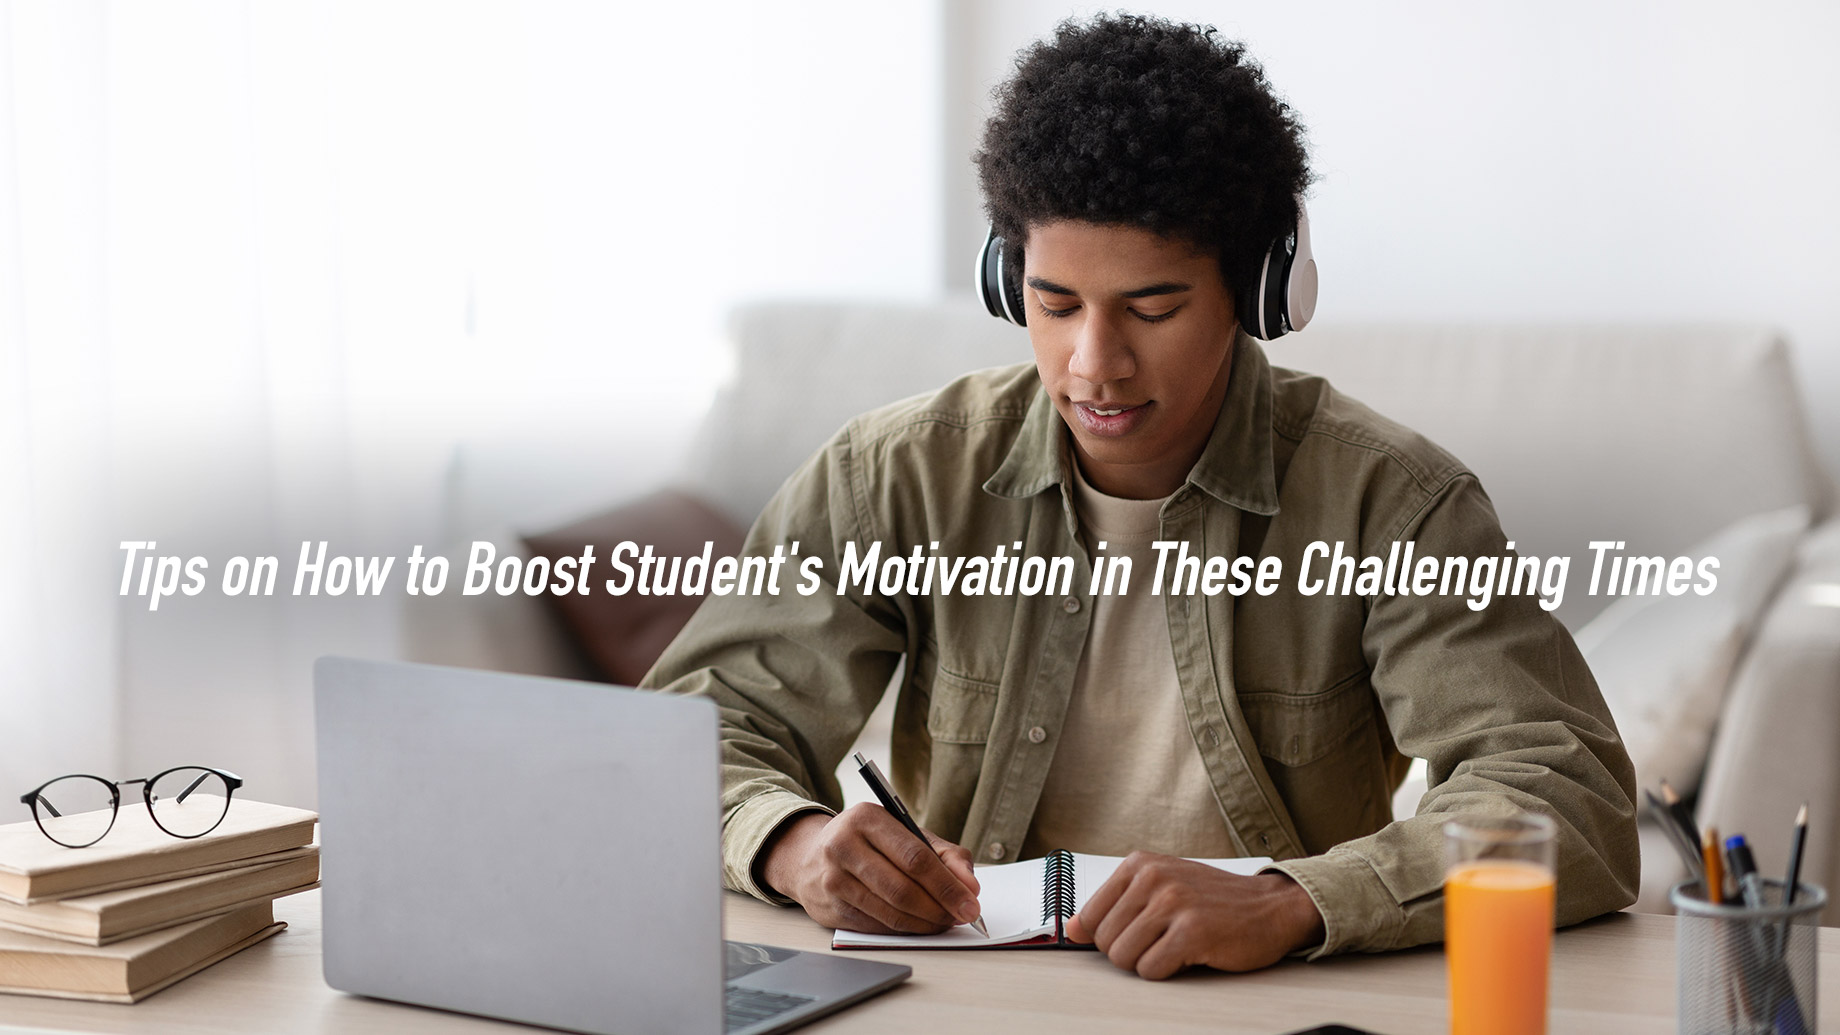 Tips on How to Boost Student's Motivation in These Challenging Times